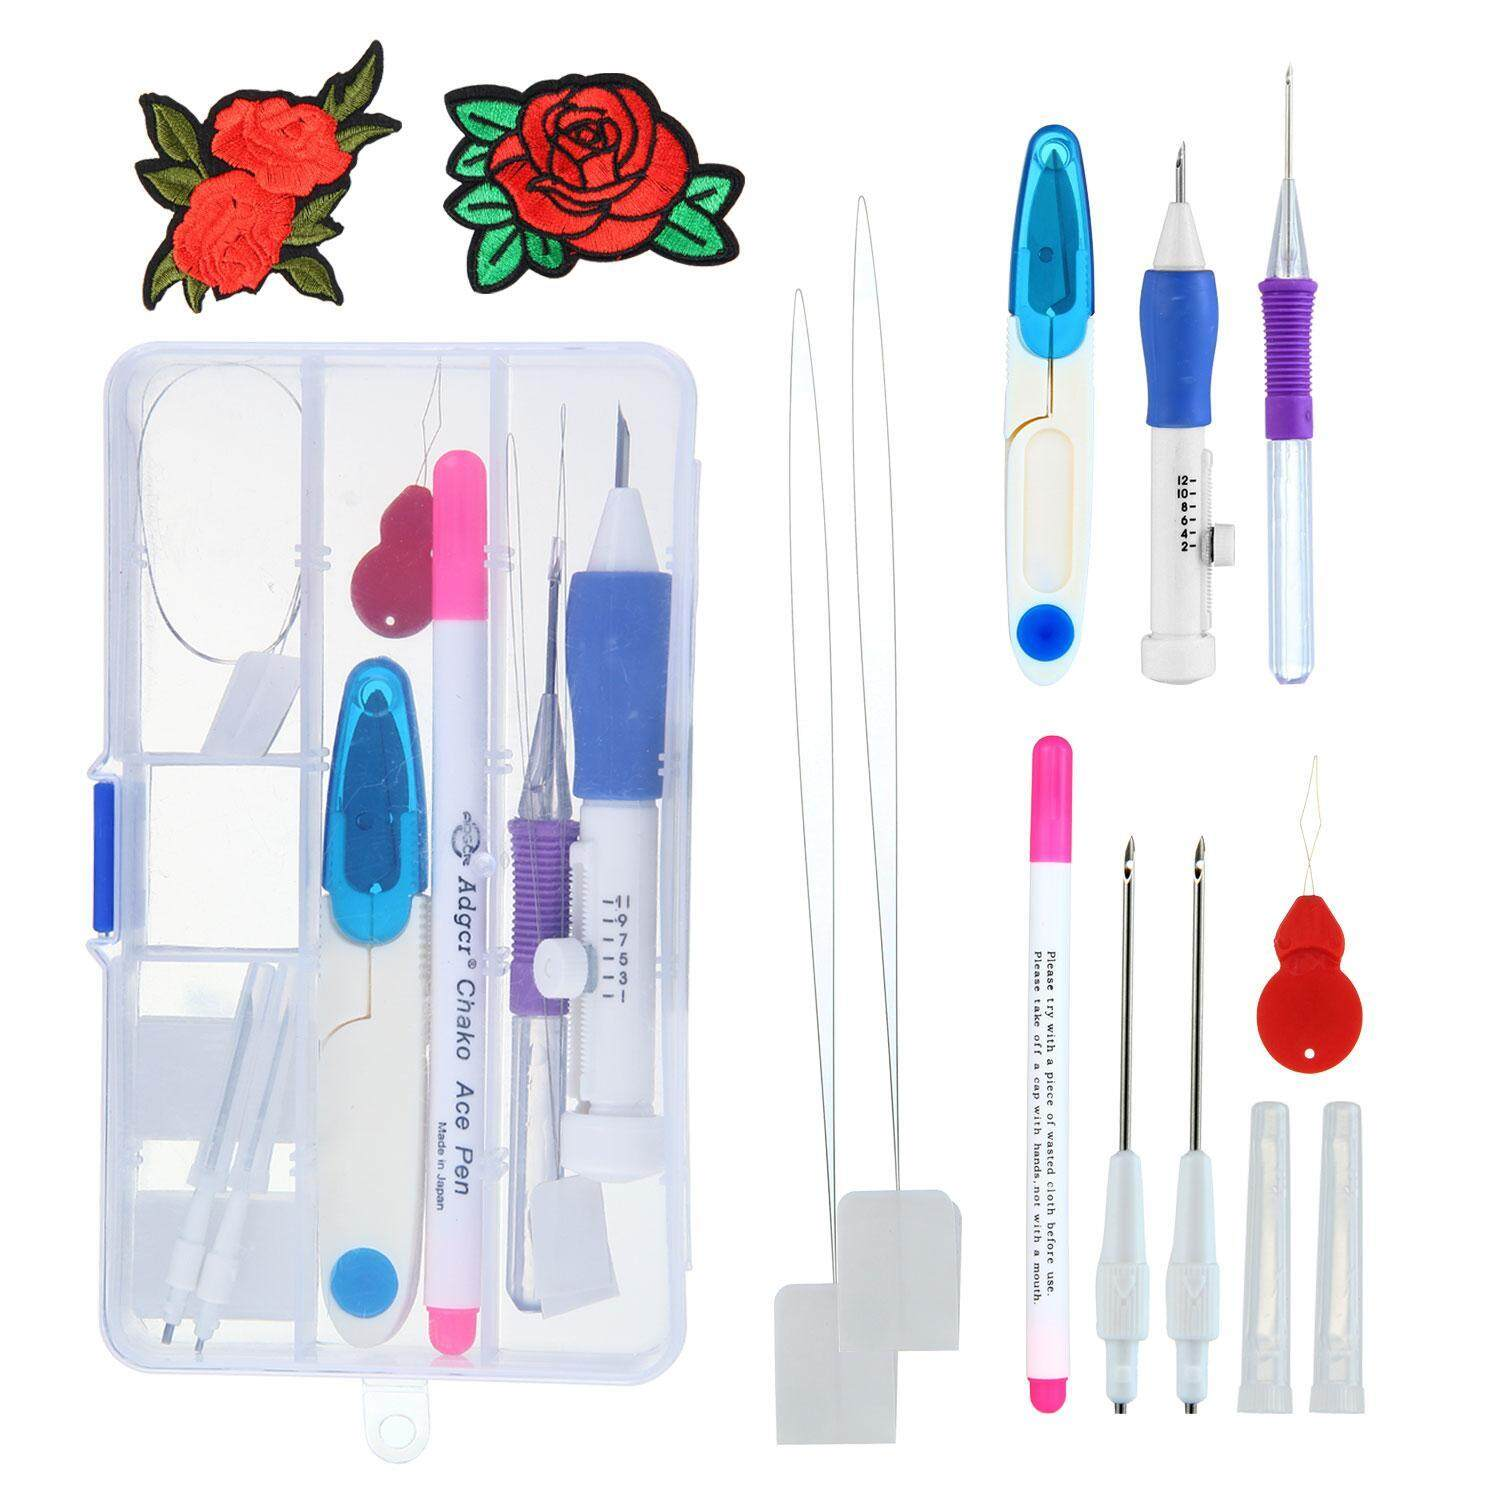 Teekeer Magic Embroidery Pen Embroidery Stitching Punch Needles Pen Set Craft Tool For Diy Threaders Sewing Knitting Kit